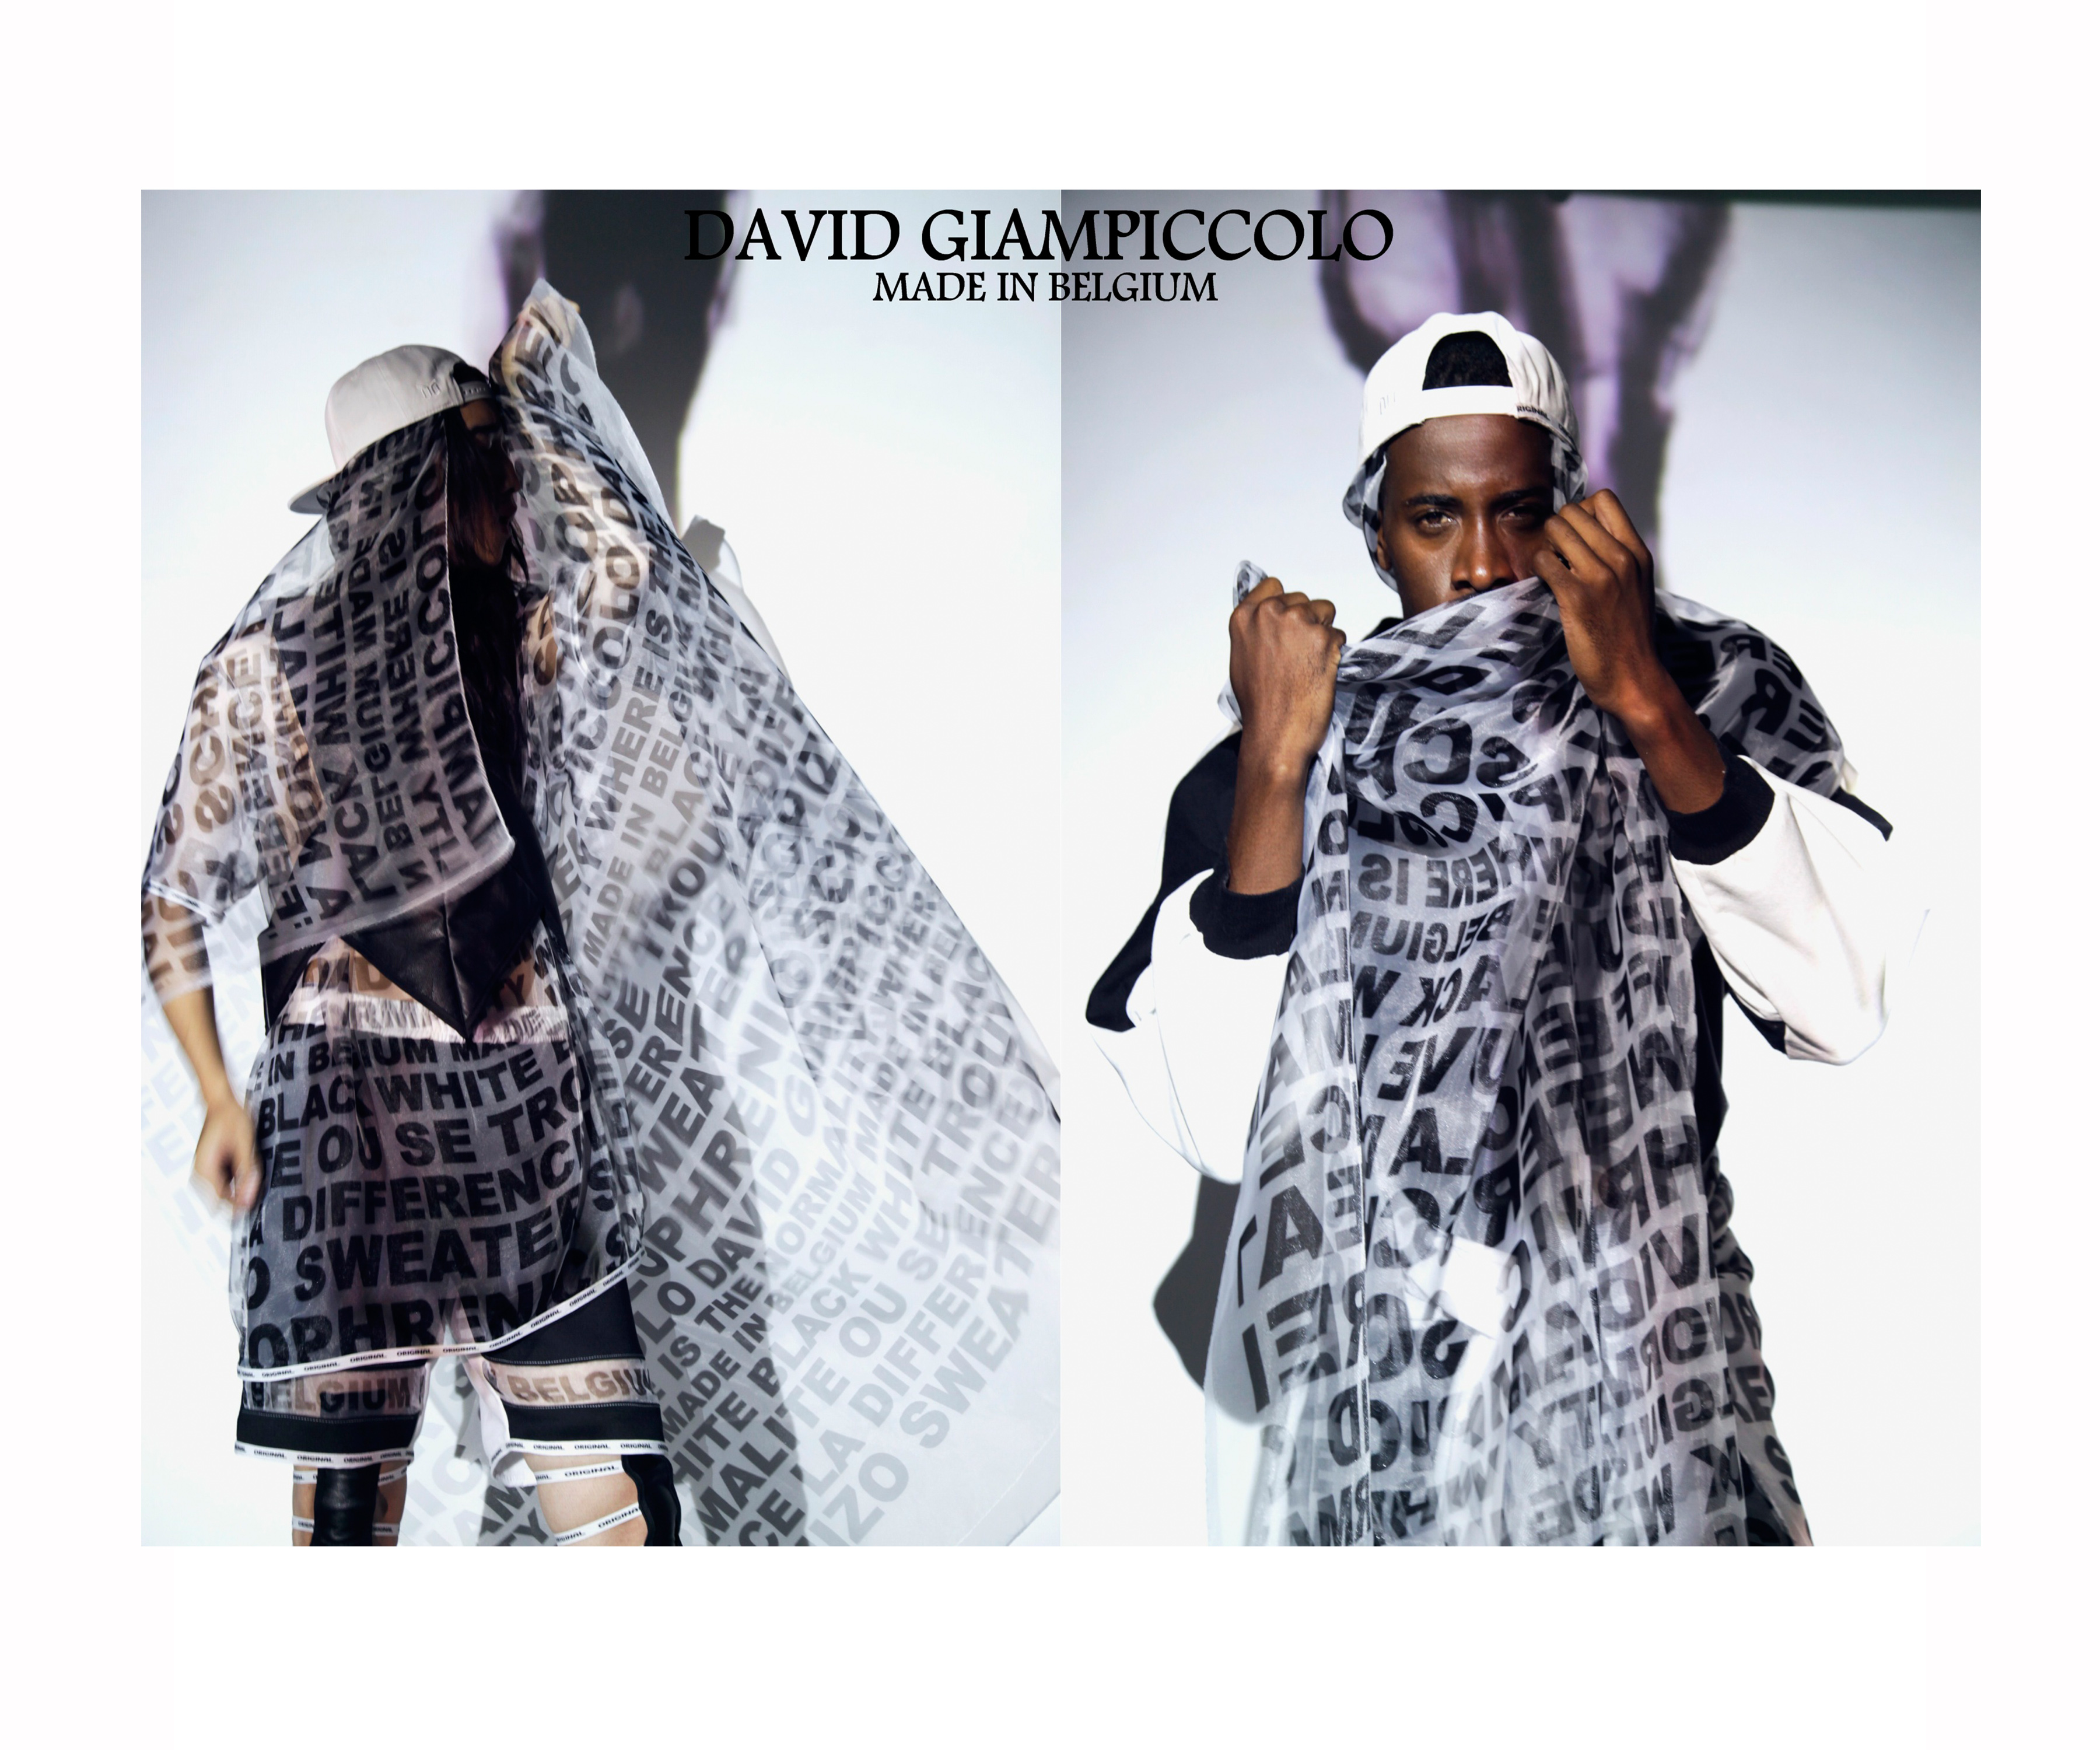 Bukunmi Grace Ajanaku David Giampiccolo SCHIZO Fall Winter 2014 Image Six